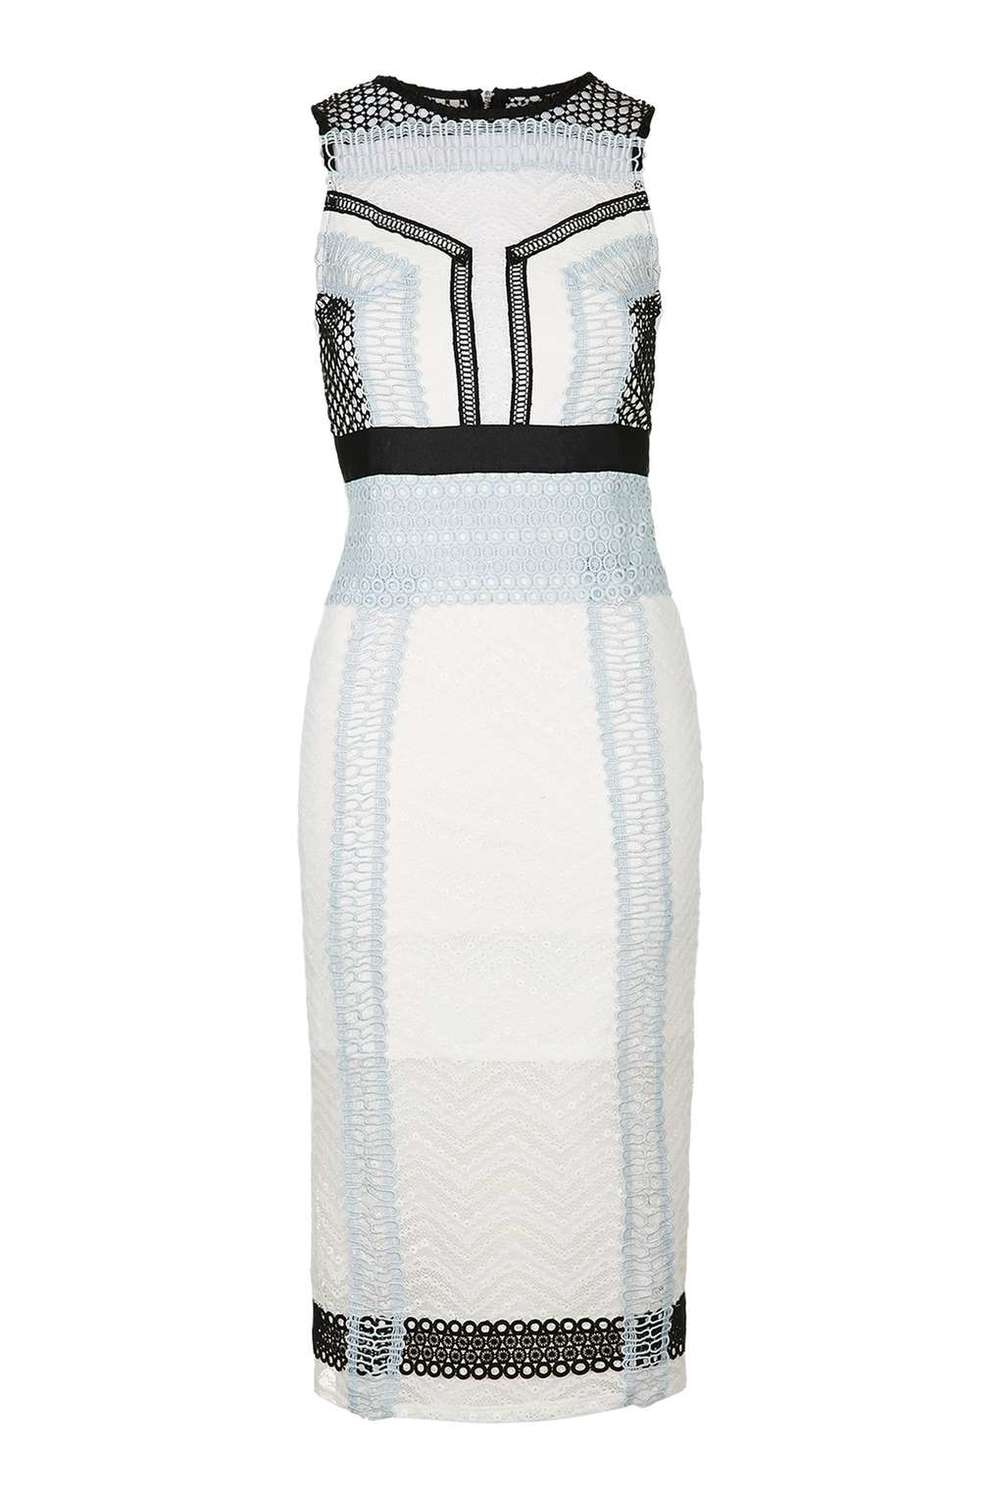 Lace Topshop Dress